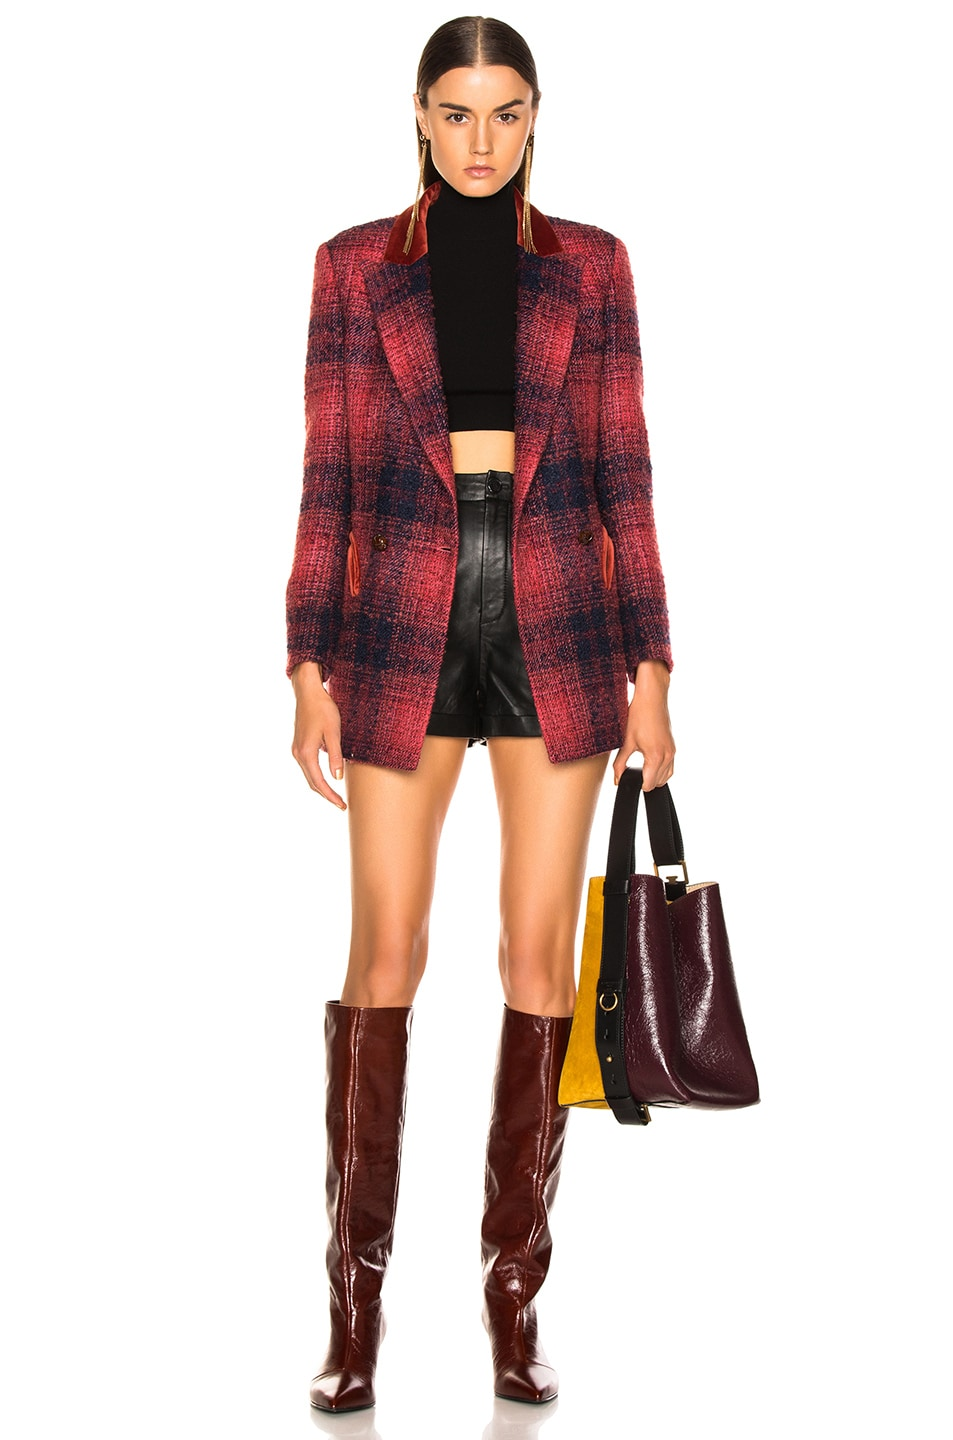 Image 5 of Blaze Milano Hickstead Everyday Double Breasted Blazer in Cherry Tartan